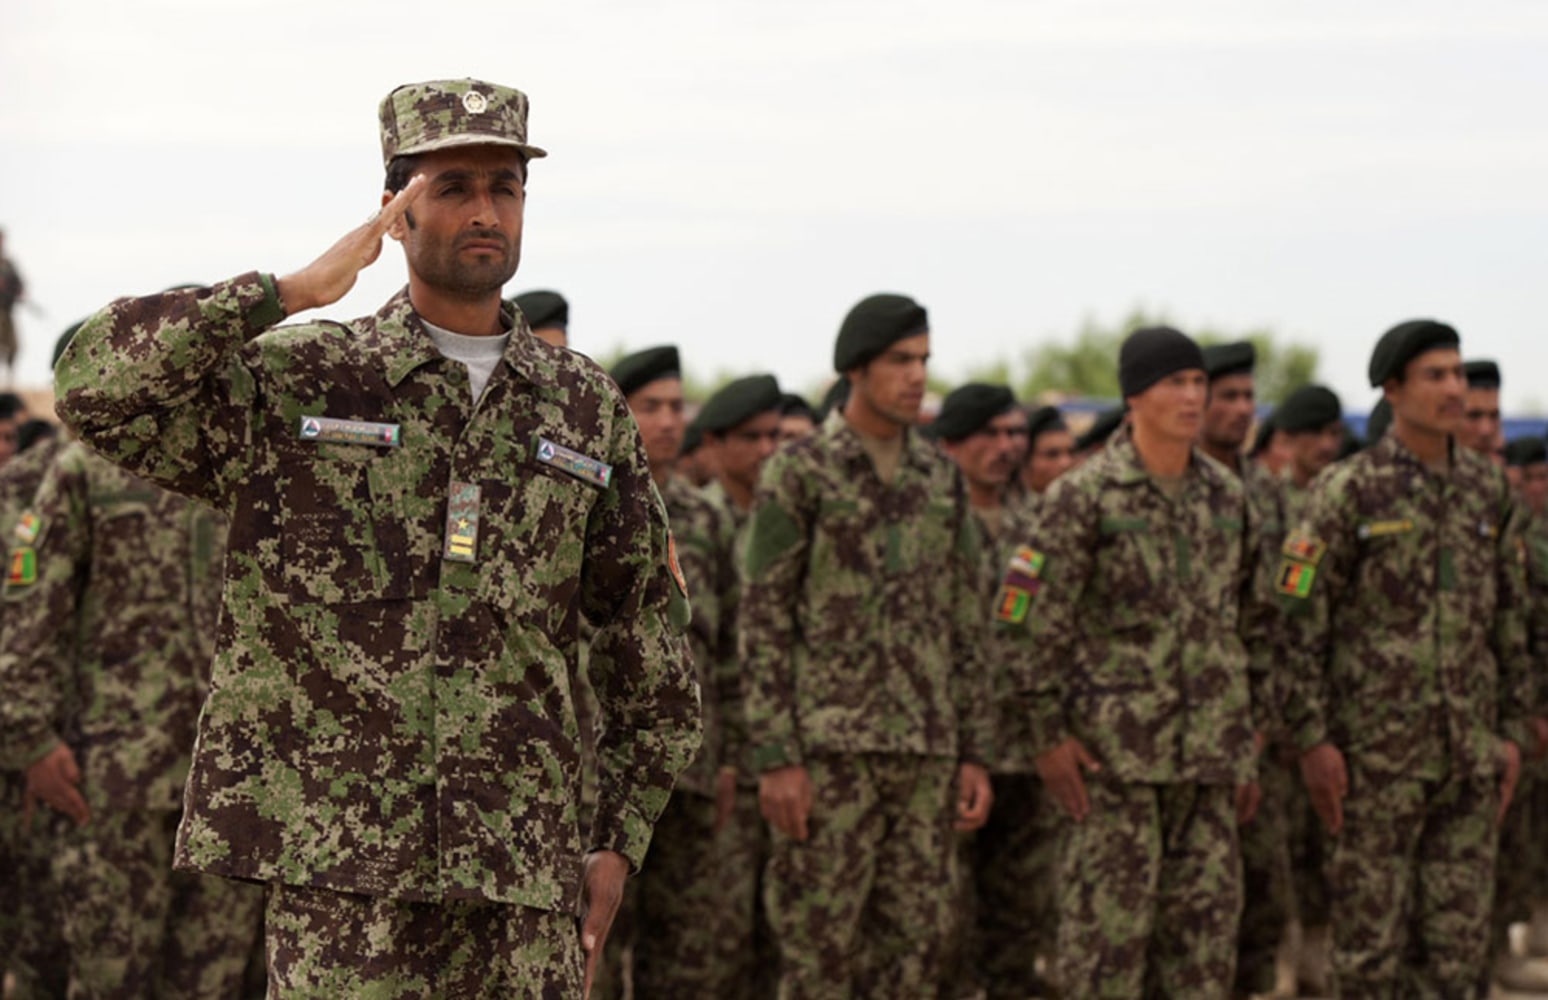 Pentagon Wastes $28 Million On Afghan Uniforms With The Wrong Camo